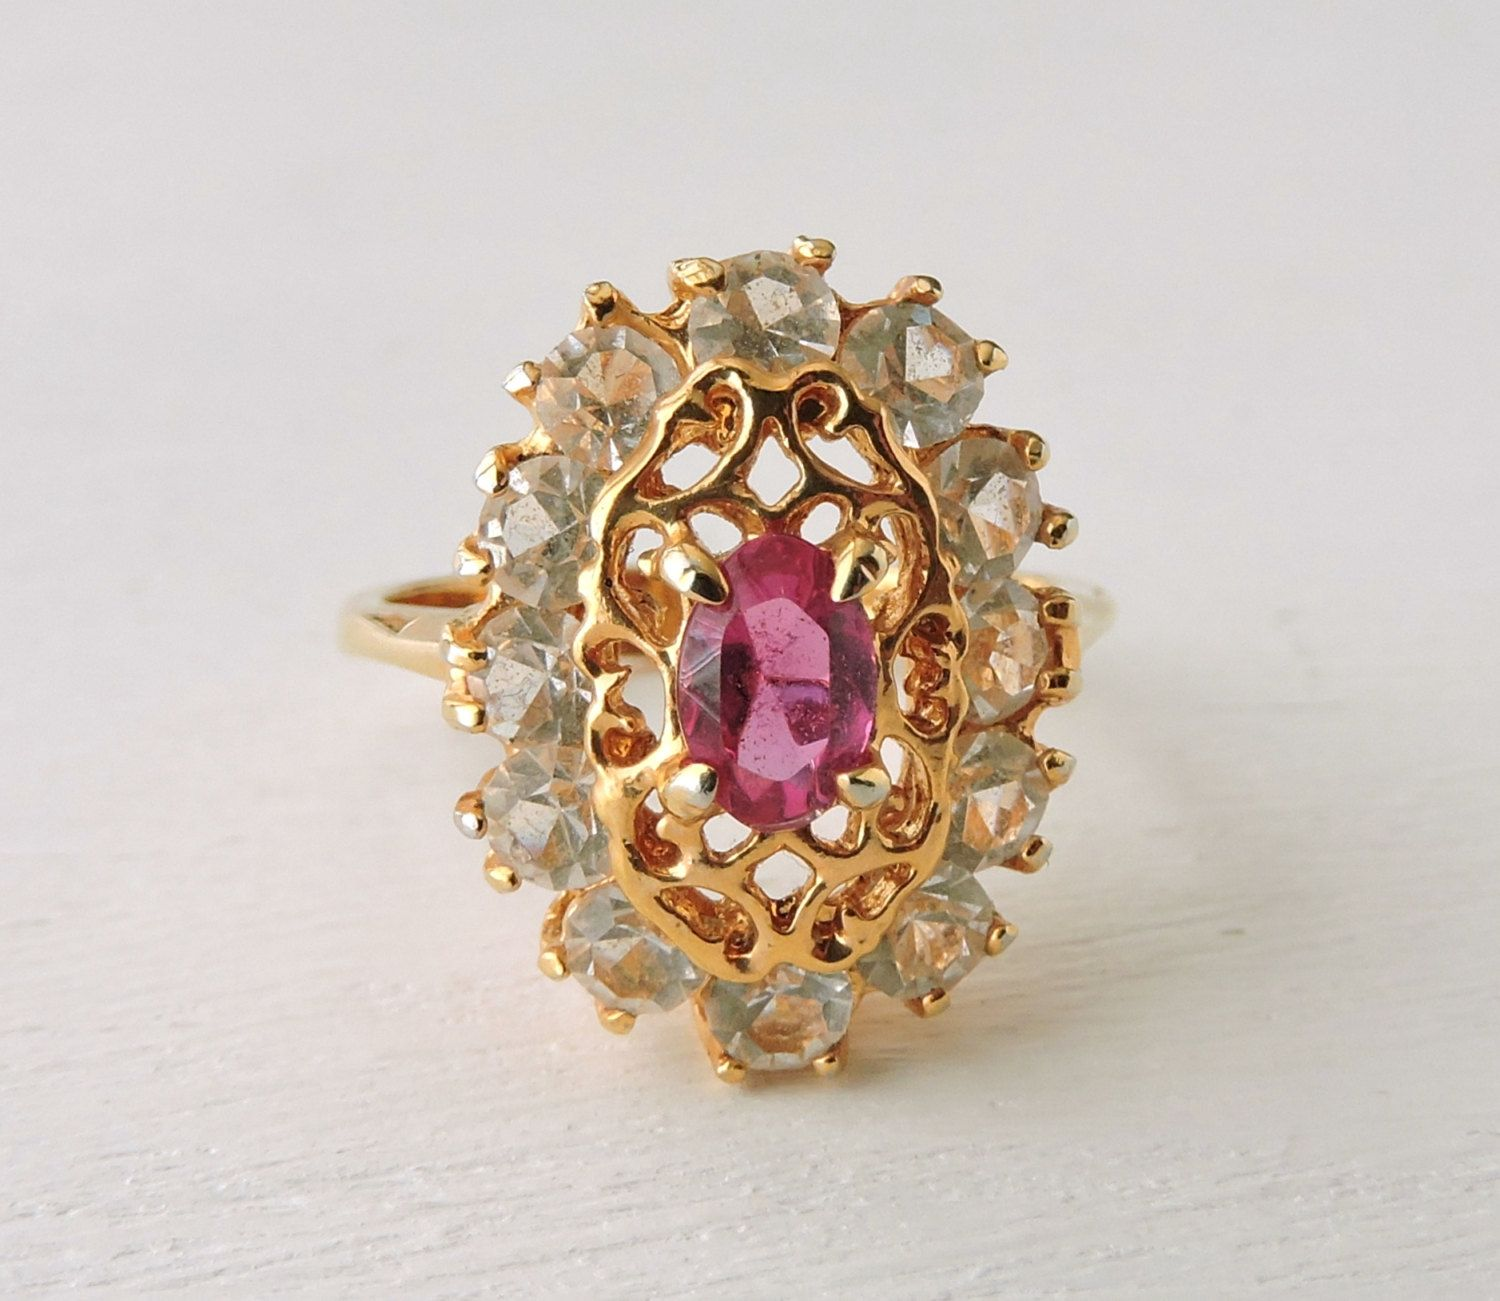 Vintage Ruby Ring: 10K Gold Ring, Ruby and White Topaz Cluster Ring, Filigree Oval Ring, 10 KT Yellow Gold, Estate Jewelry, sz 6.5 by ninthstreetvintage on Etsy